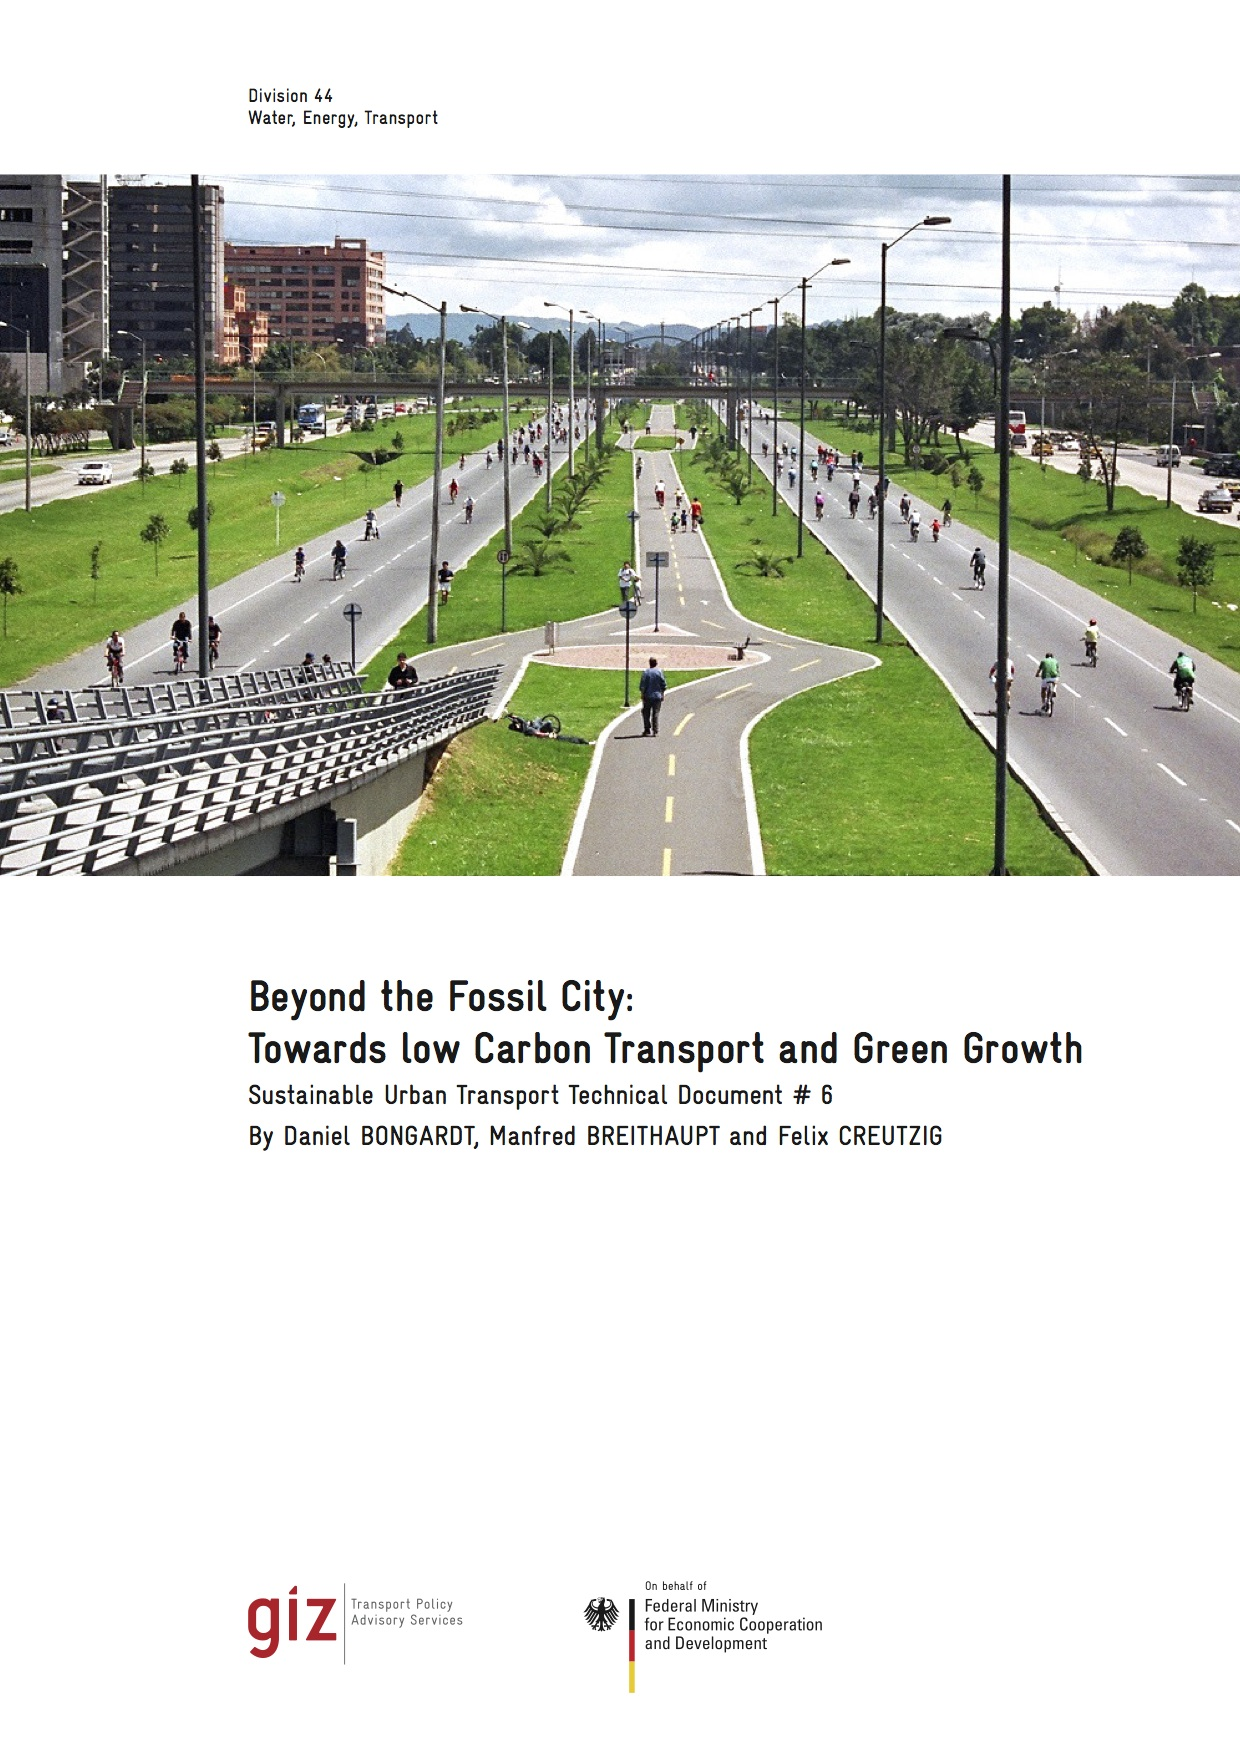 GIZ-Technical-Paper-6-Beyond-the-Fossil-City_Towards-Low-Carbon-Transport-and-Green-Growth